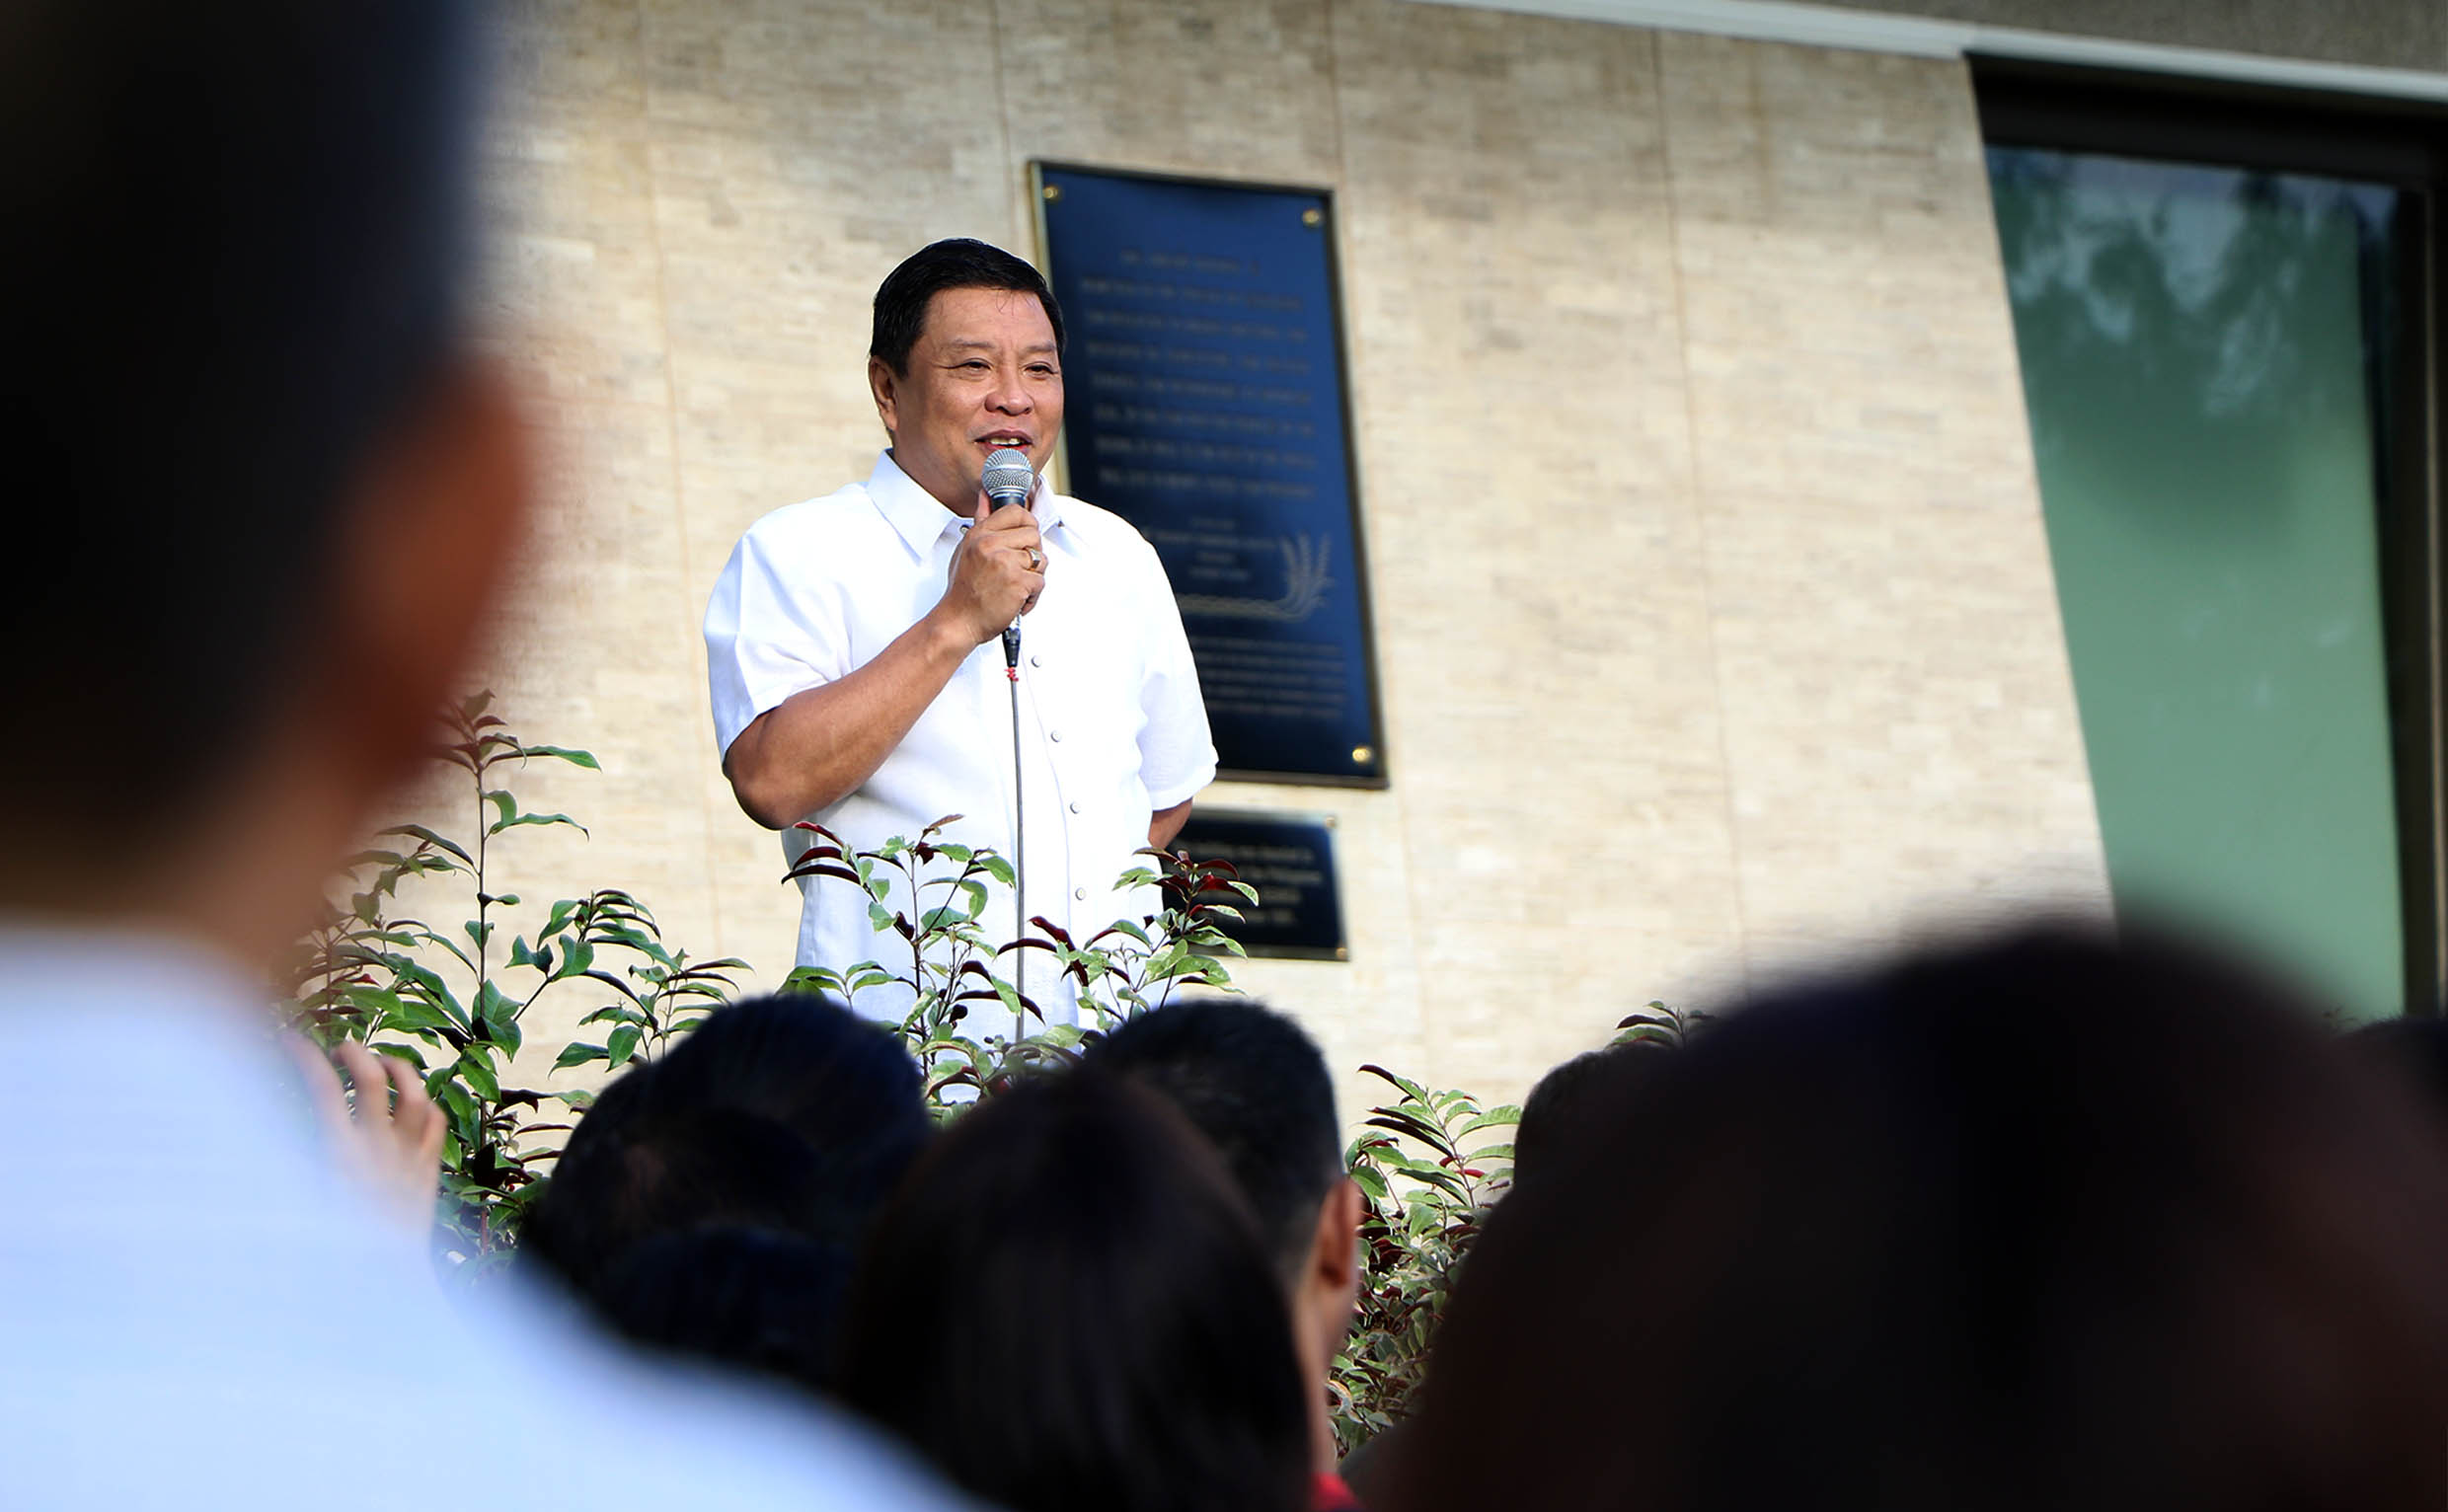 Chancellor Sanchez lauds teamwork for feats in 2019